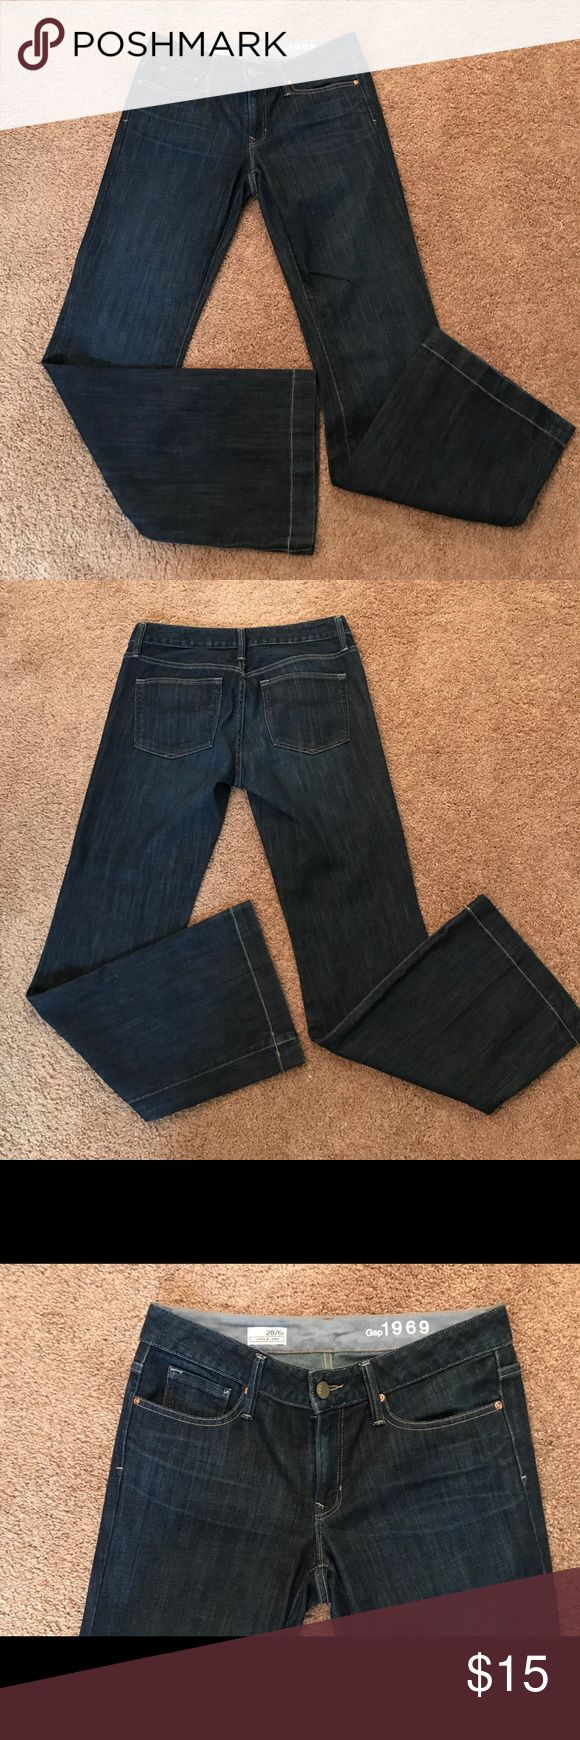 GAP Jeans Pre-Owned Woman's GAP Jean Great Condition GAP Jeans